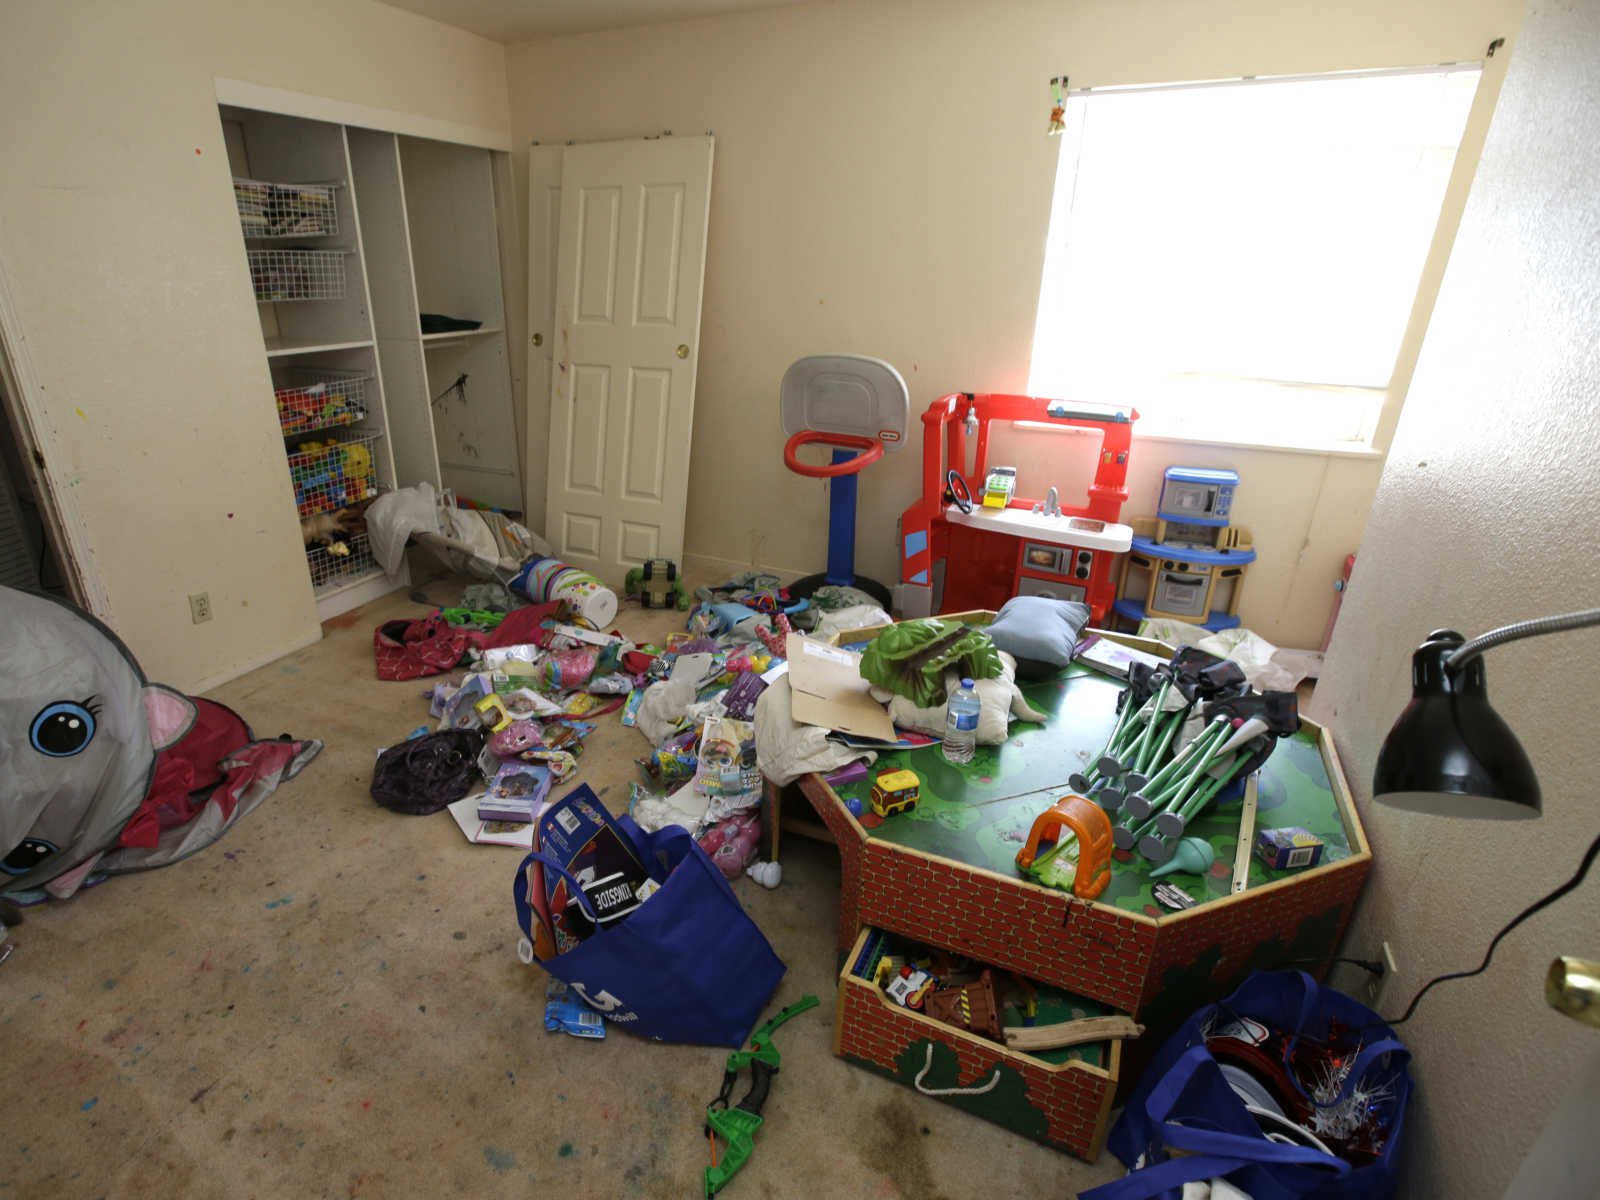 California prosecutors allege 10 children in filthy home were waterboarded, hit with crossbows, BBs, kicked and punched.